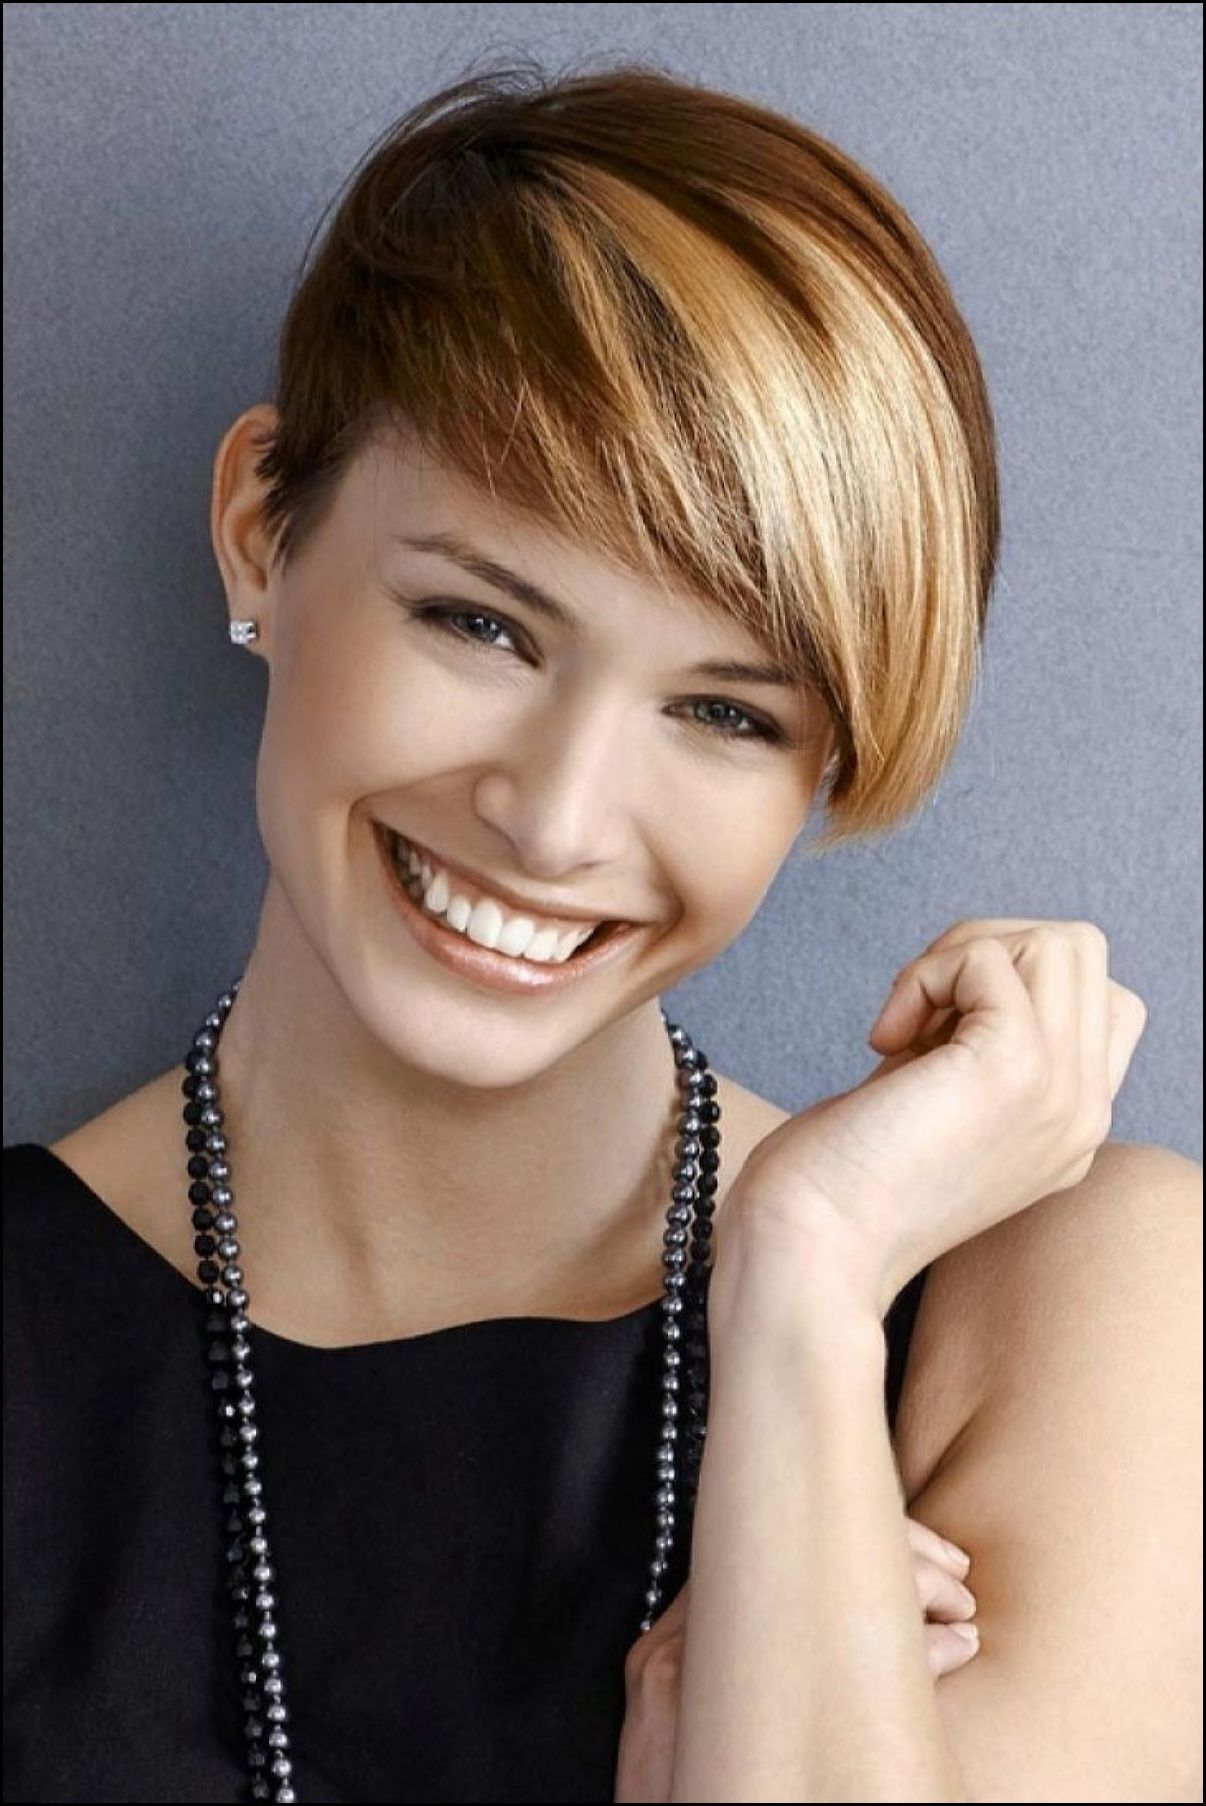 Inspirational Kurze Frisuren 2014 Project - buzz-pr.com ...